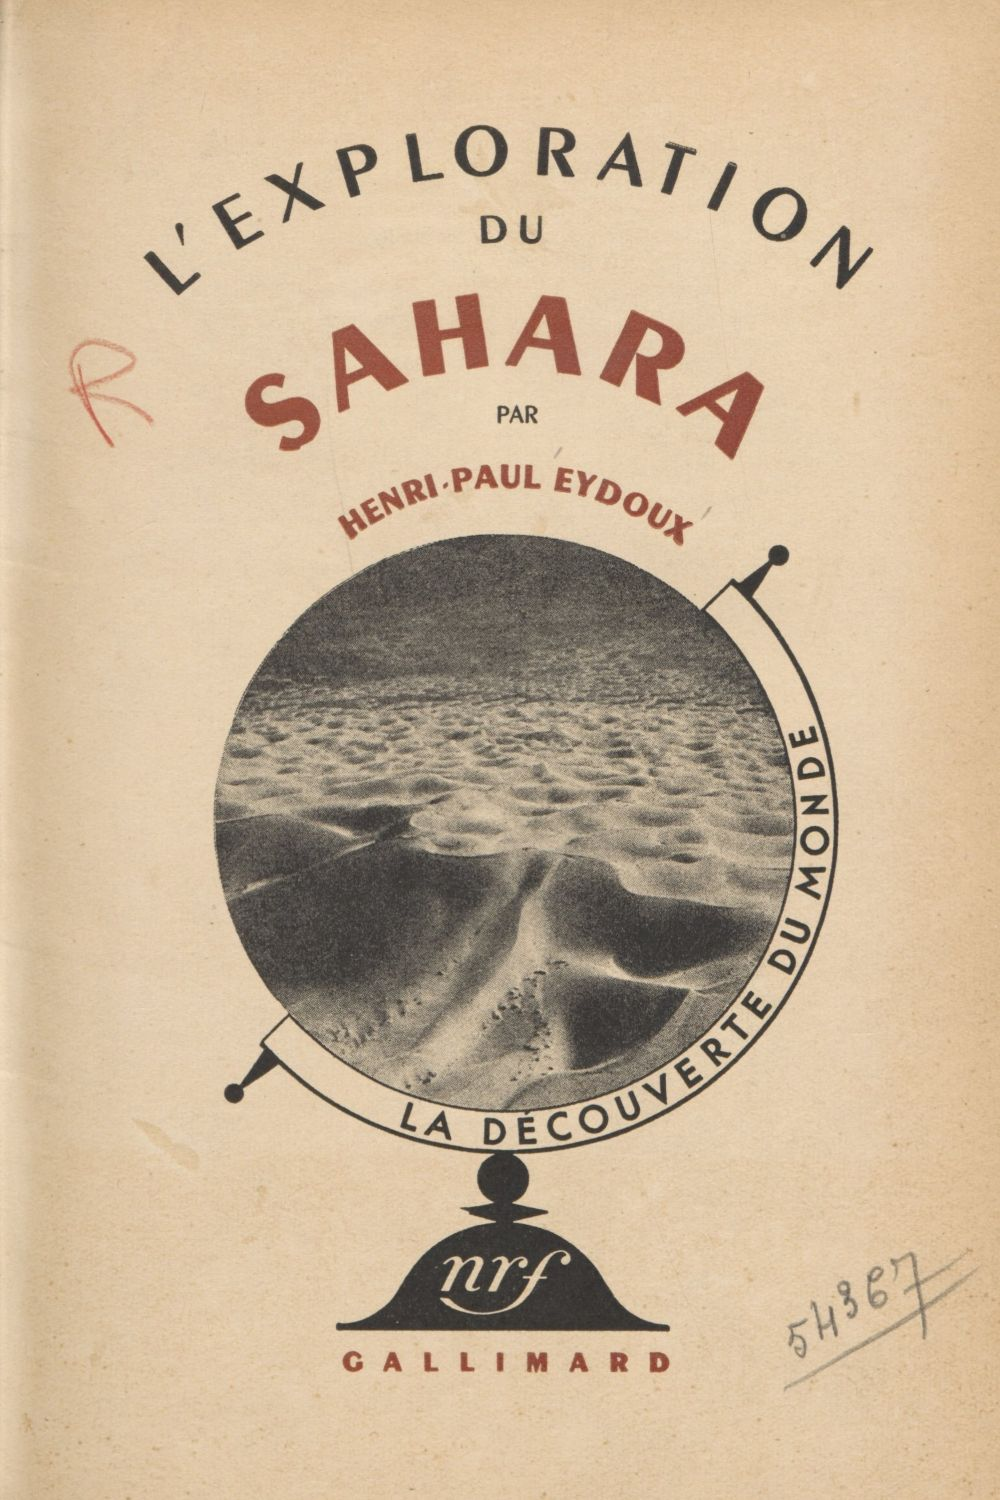 L'exploration du Sahara (4)